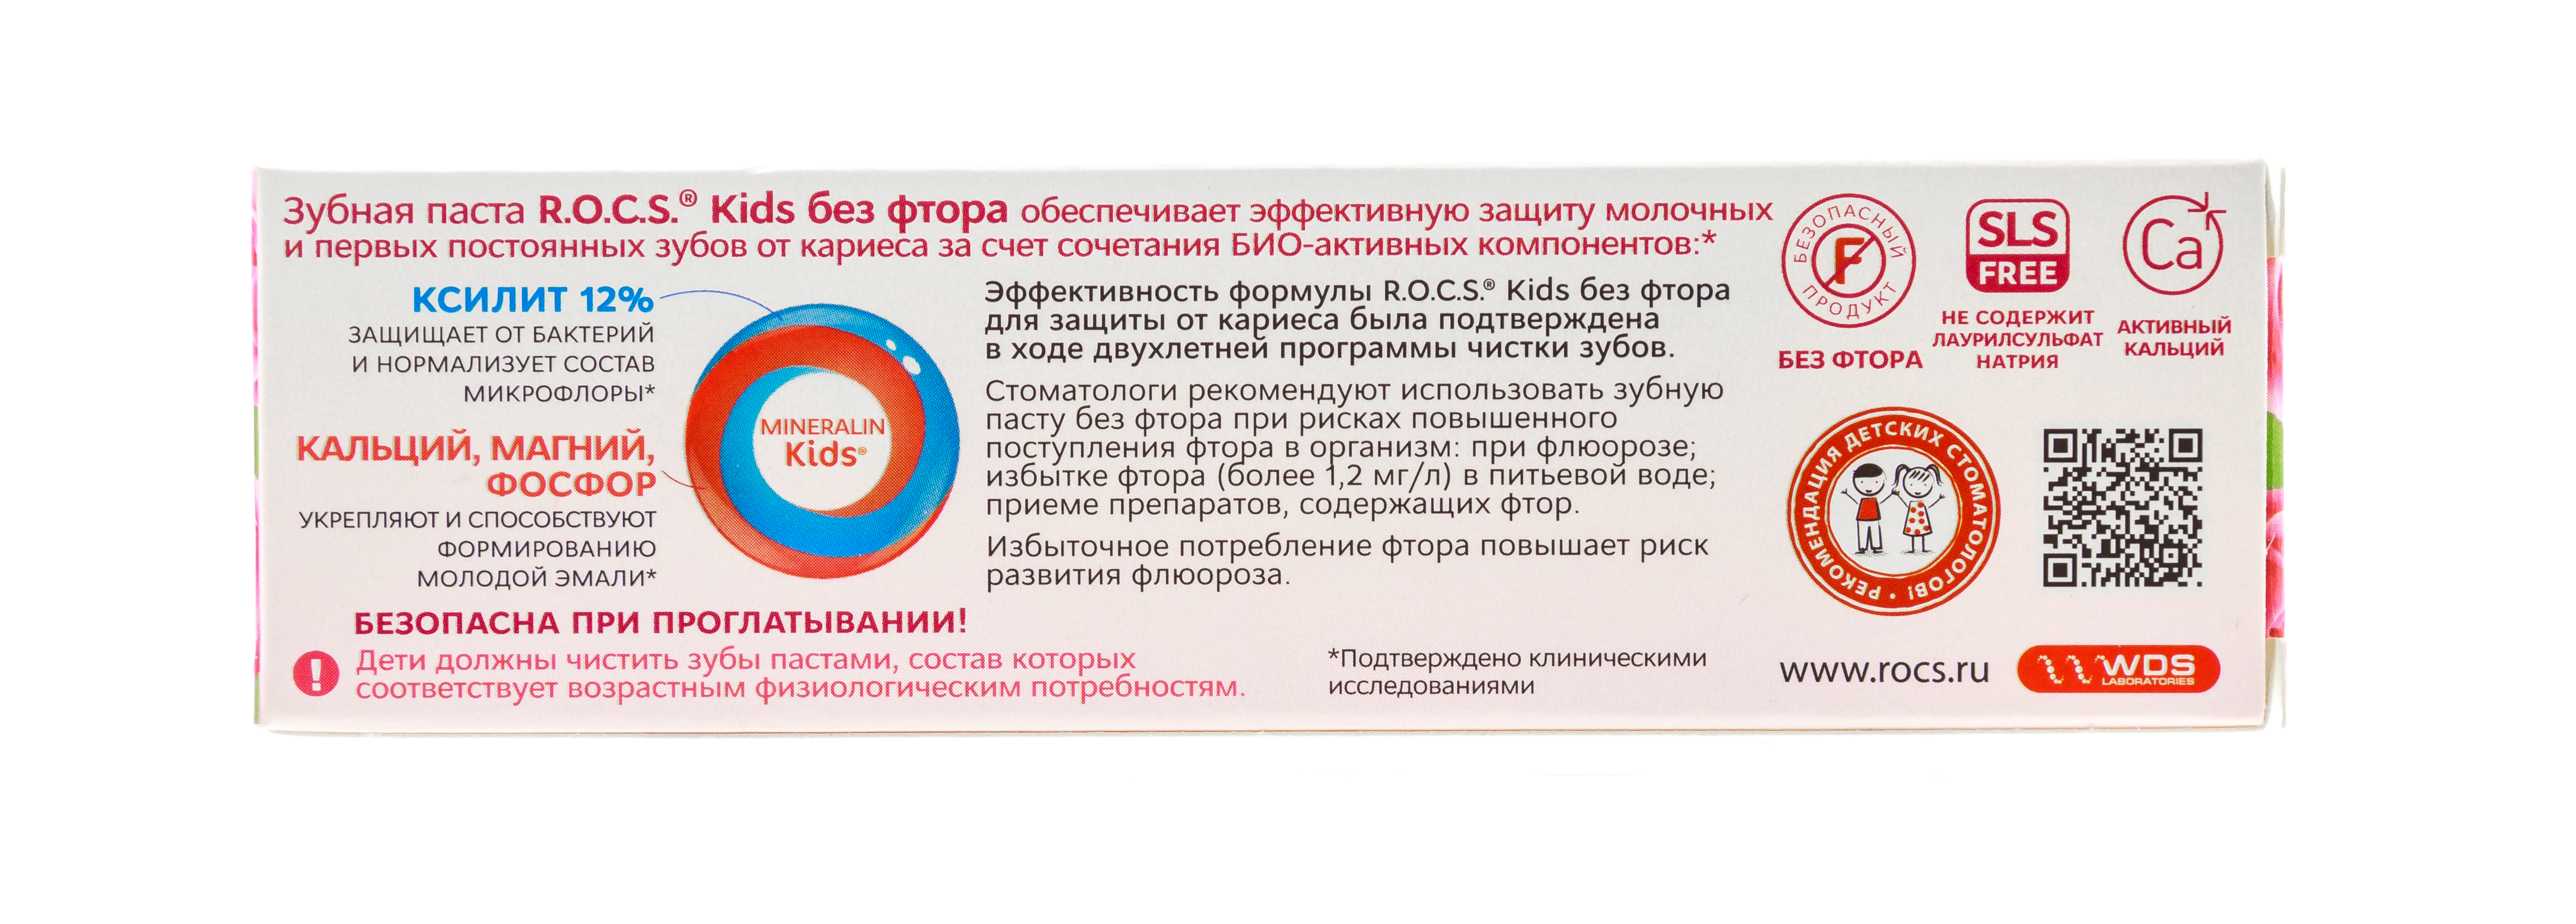 Рокс Зубная паста Kids Sweet Princess с ароматом Розы, 45 г (R.O.C.S, Kids 3-7 years) фото 5